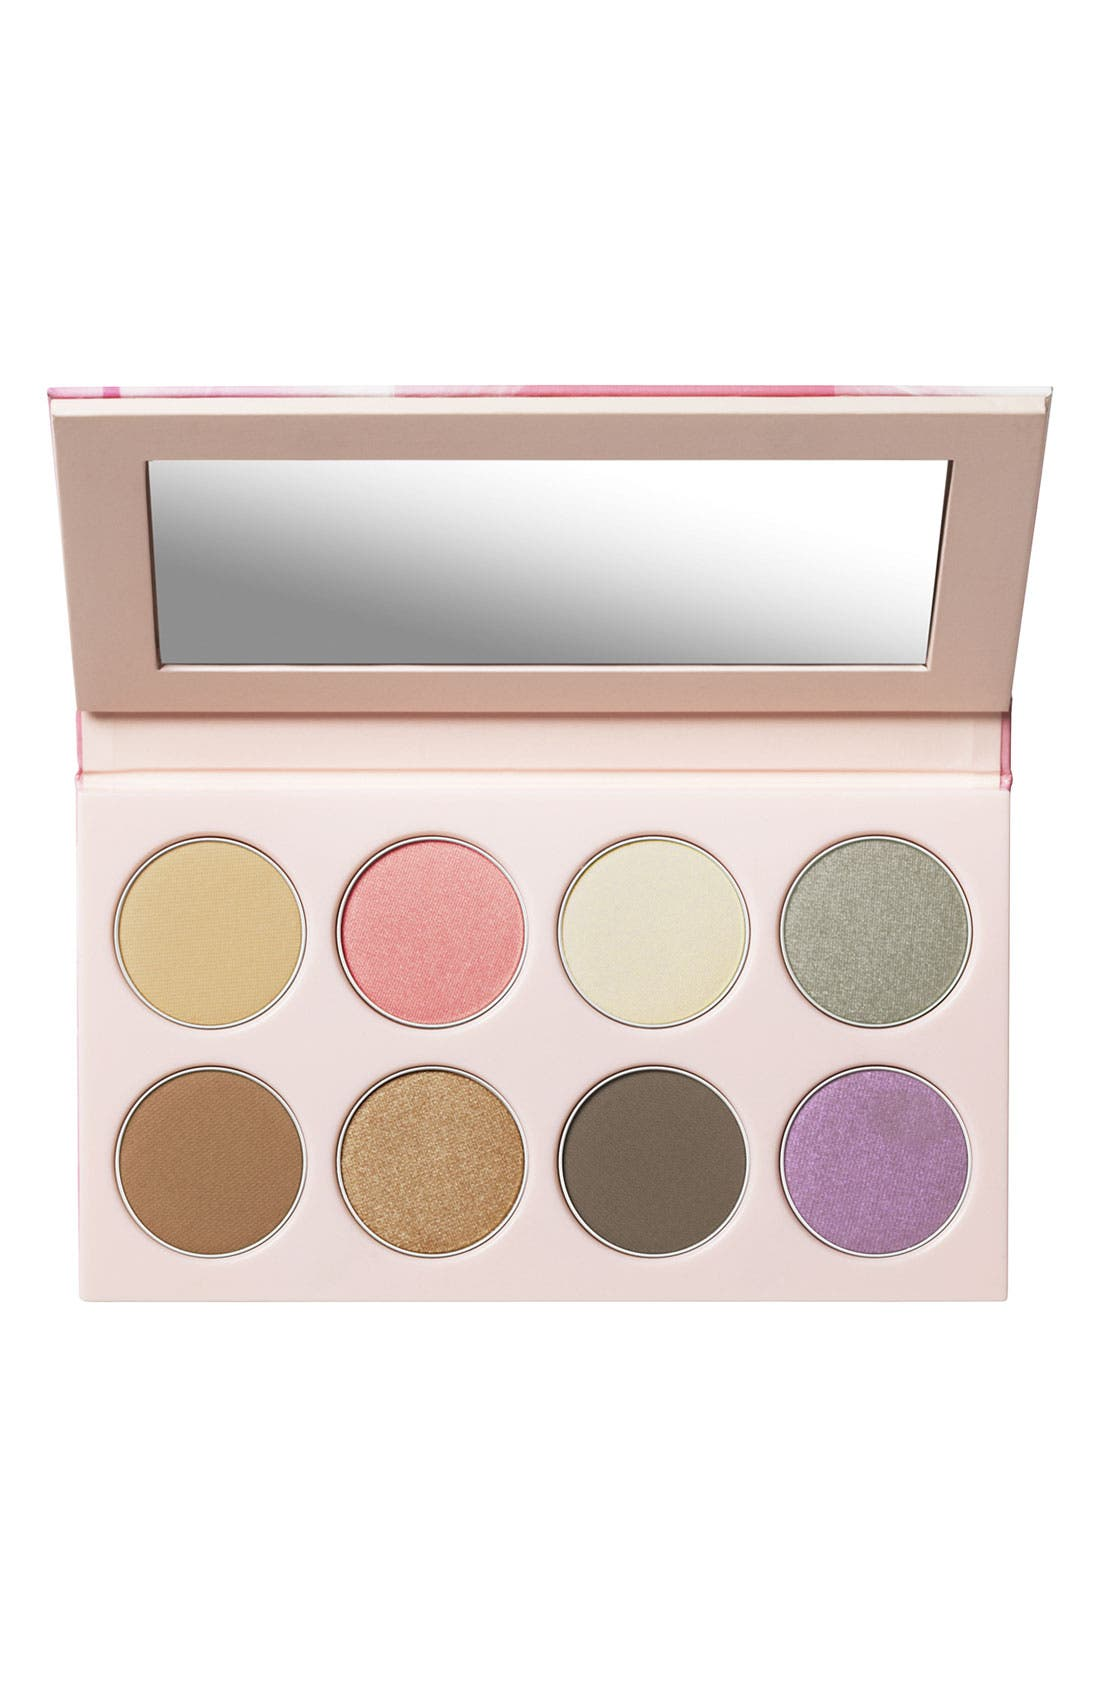 'Be Discovered' Eyeshadow Palette,                         Main,                         color, 000